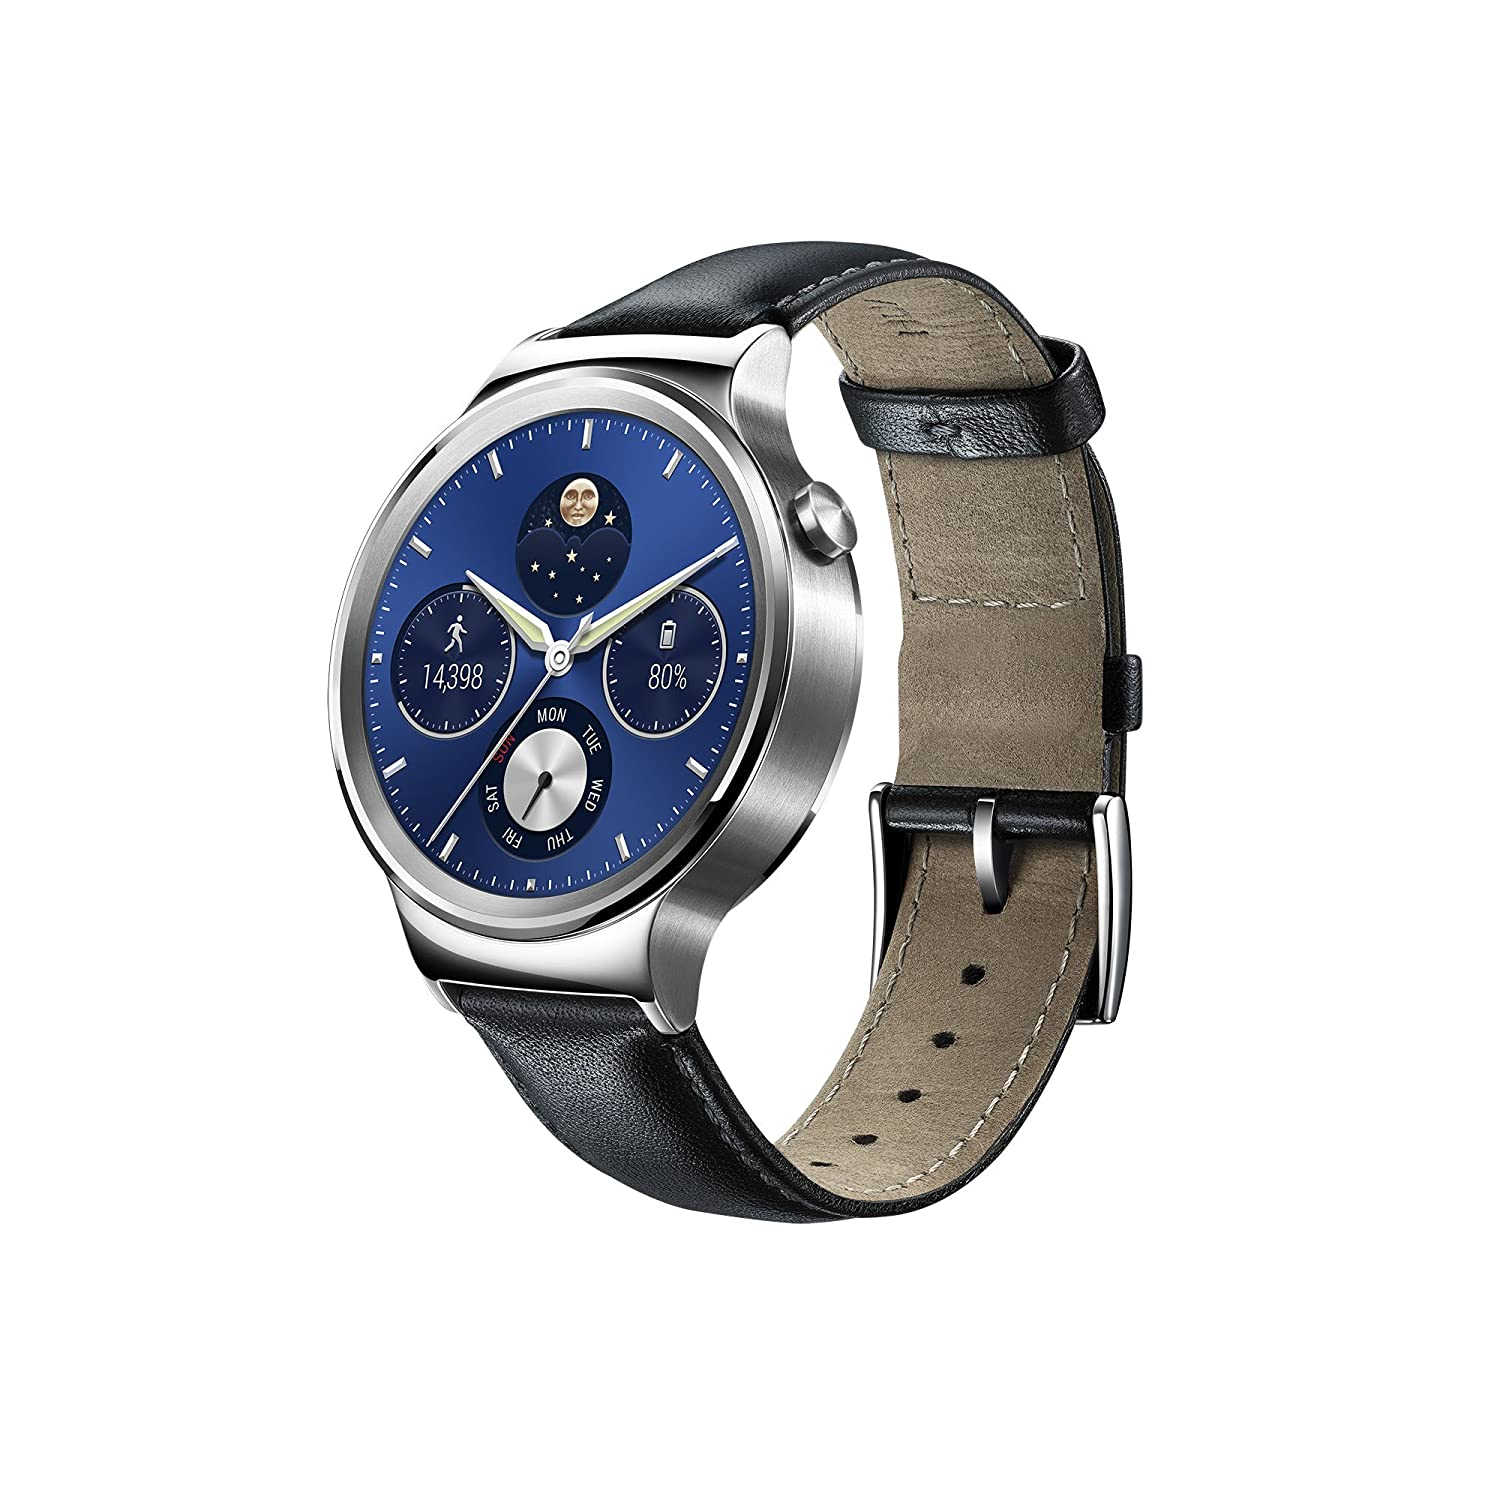 Huawei Watch W1 Silver Frame Leather Belt Android IOS ...